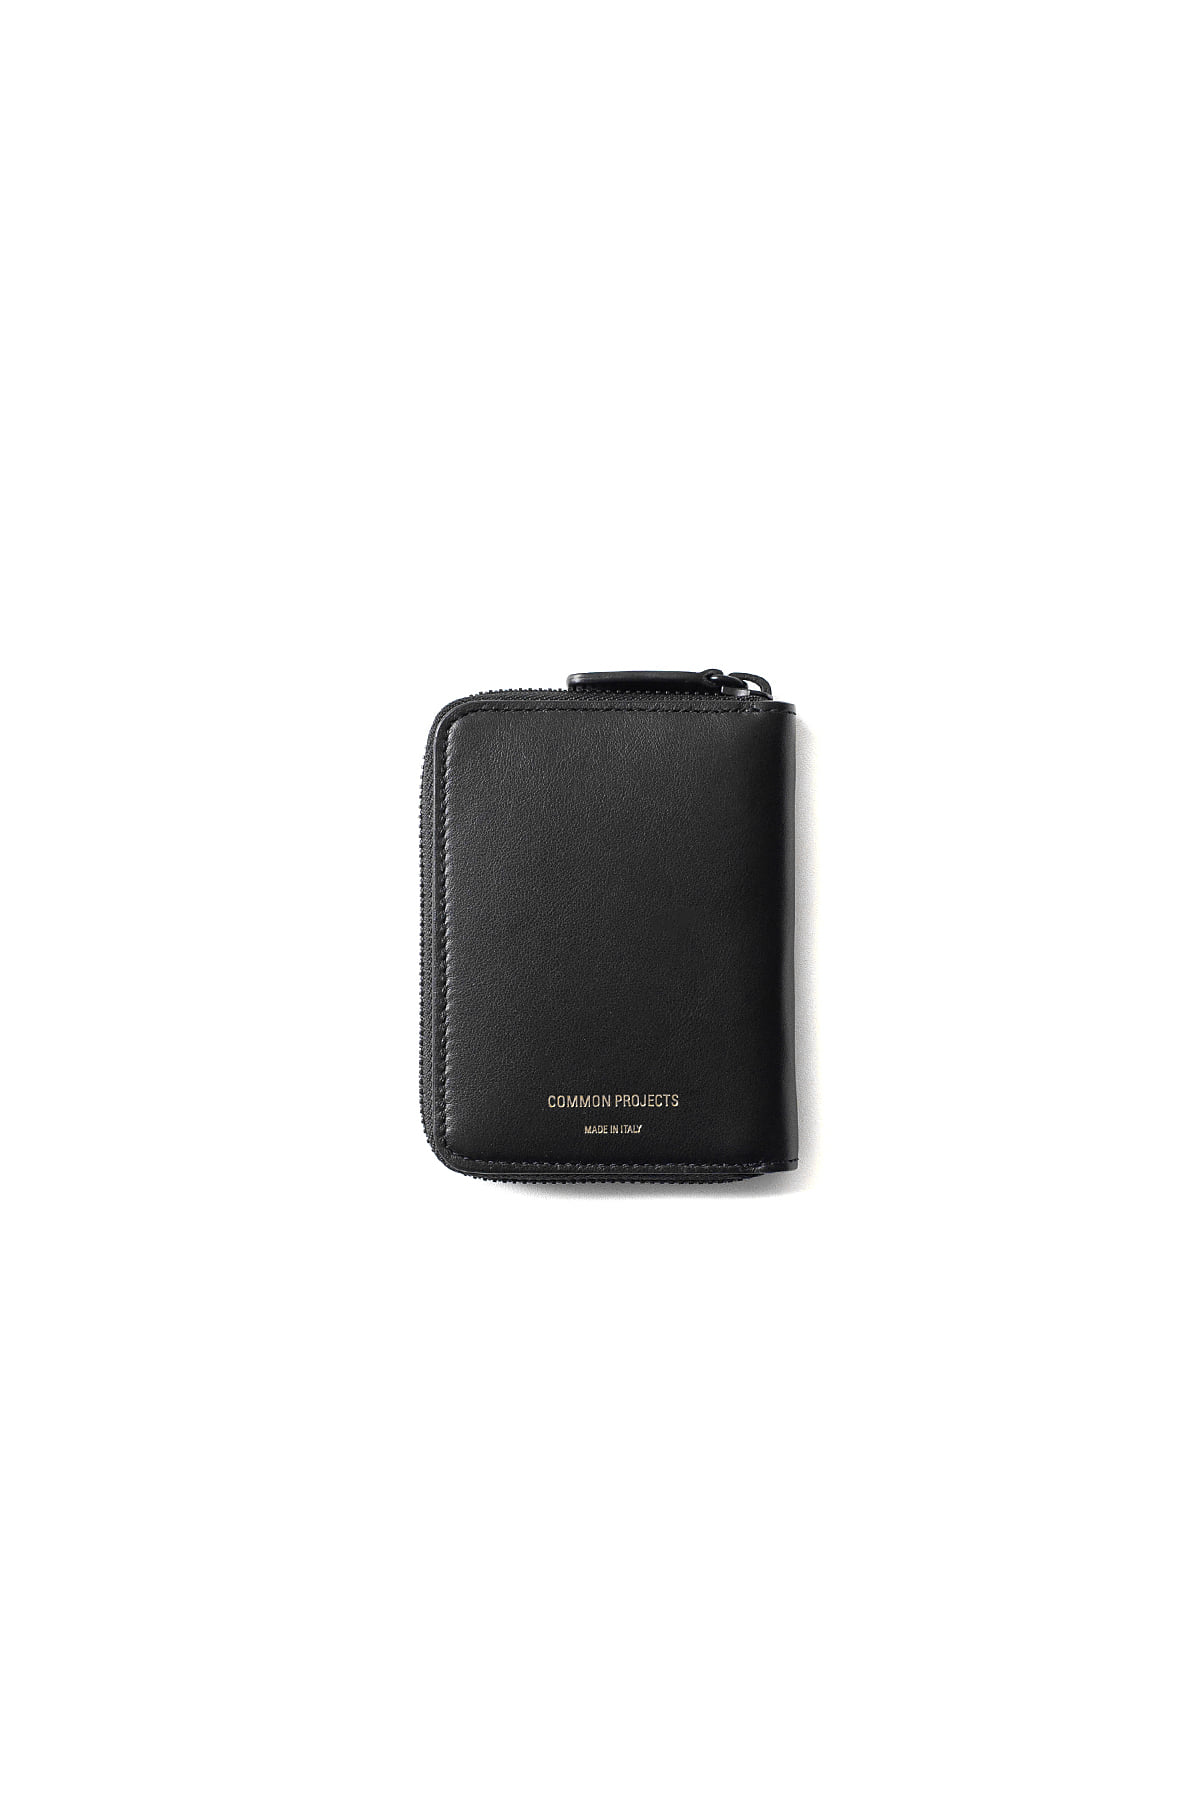 Common Projects : Zip Coin Case (Black)